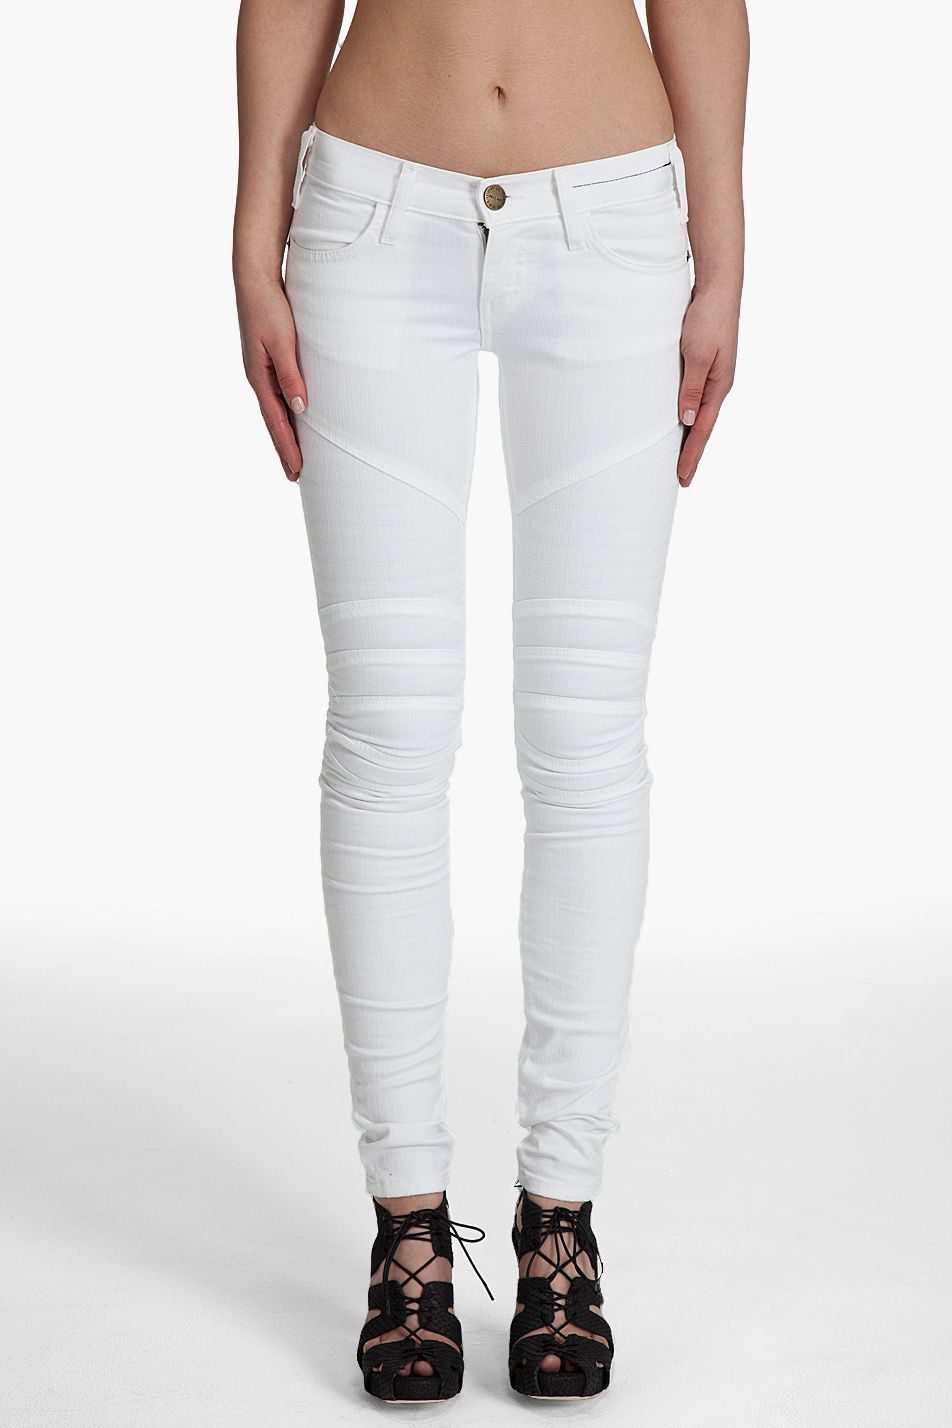 Awesome White Jeans for Women : White Jeans | Awesome White Jeans ...